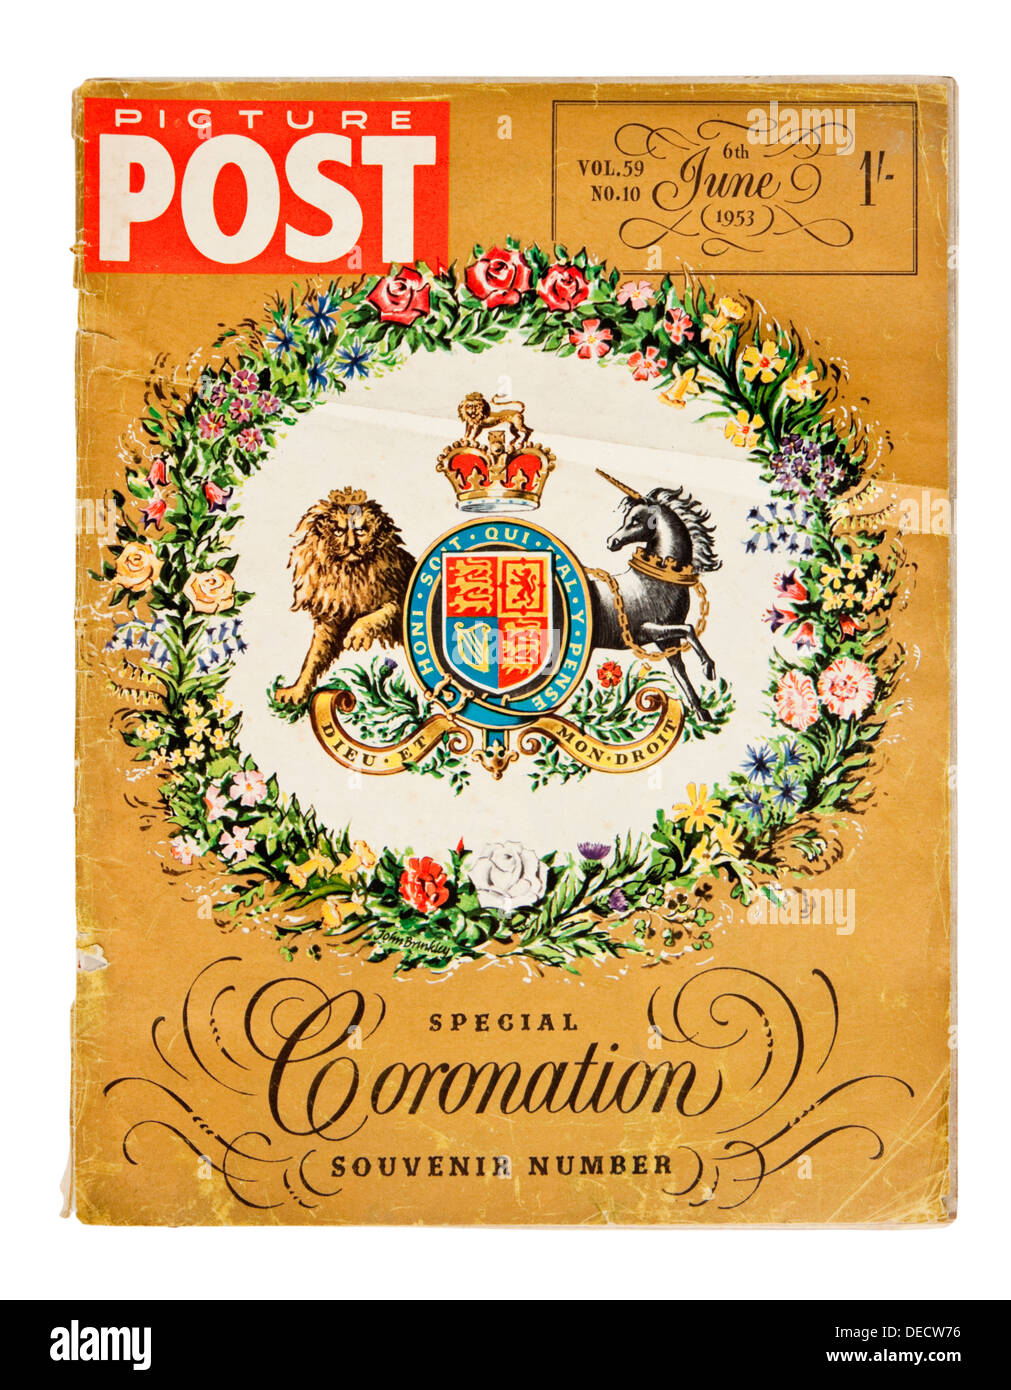 6th June 1953 Special Souvenir Edition of the Picture Post magazine to celebrate the Coronation of Queen Elizabeth II - Stock Image